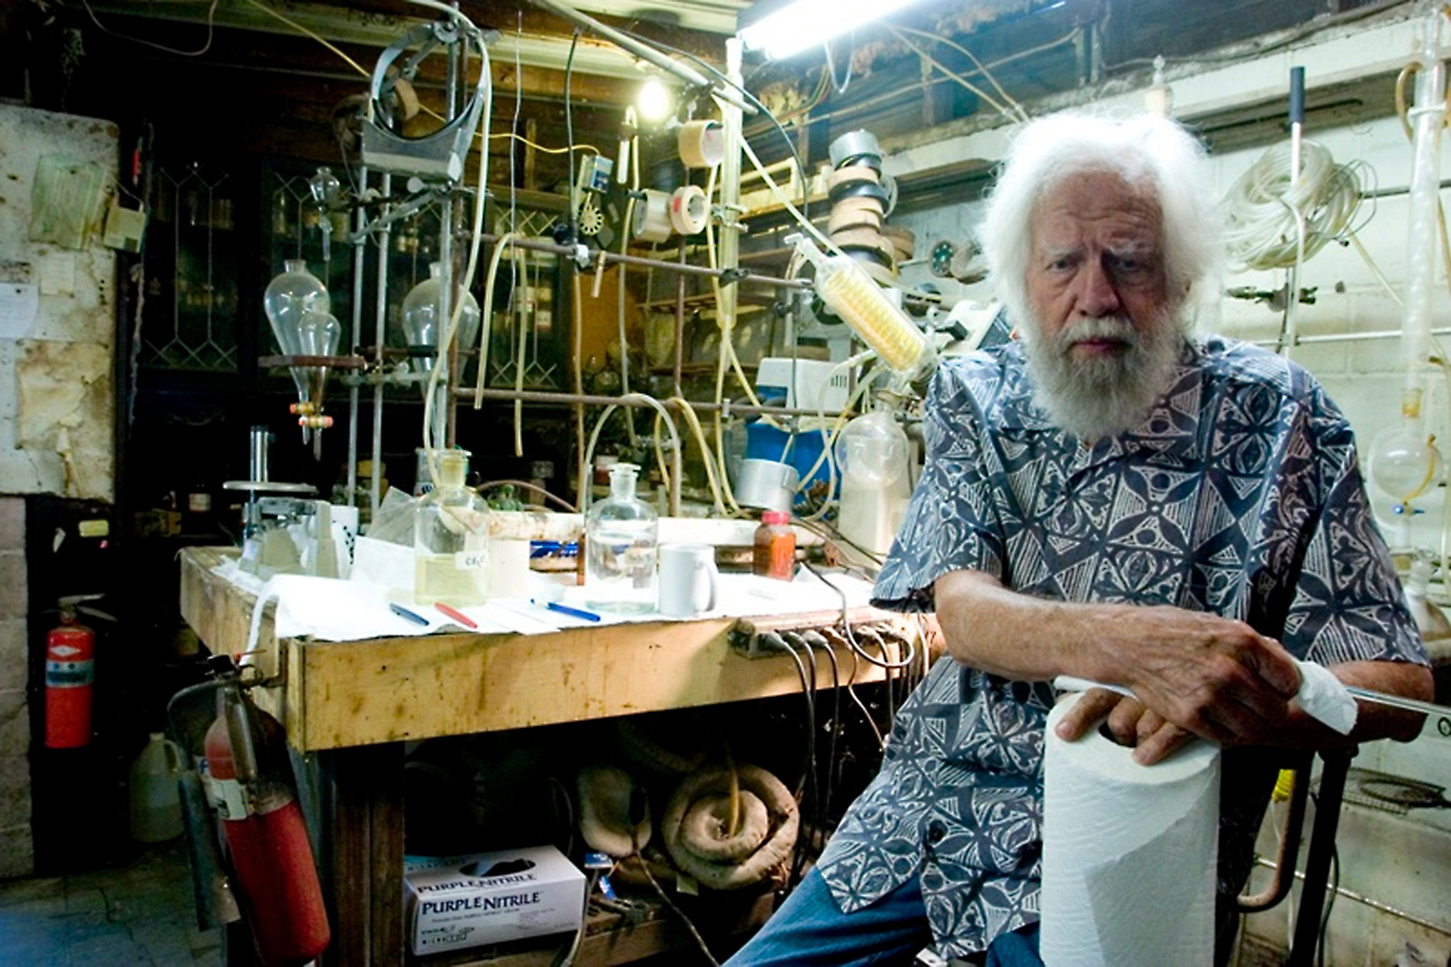 alexander shulgin The scientist alexander sasha shulgin had already been consulting with the drug enforcement administration (dea) for decades but after an unflattering high times article, they decided to raid his house.